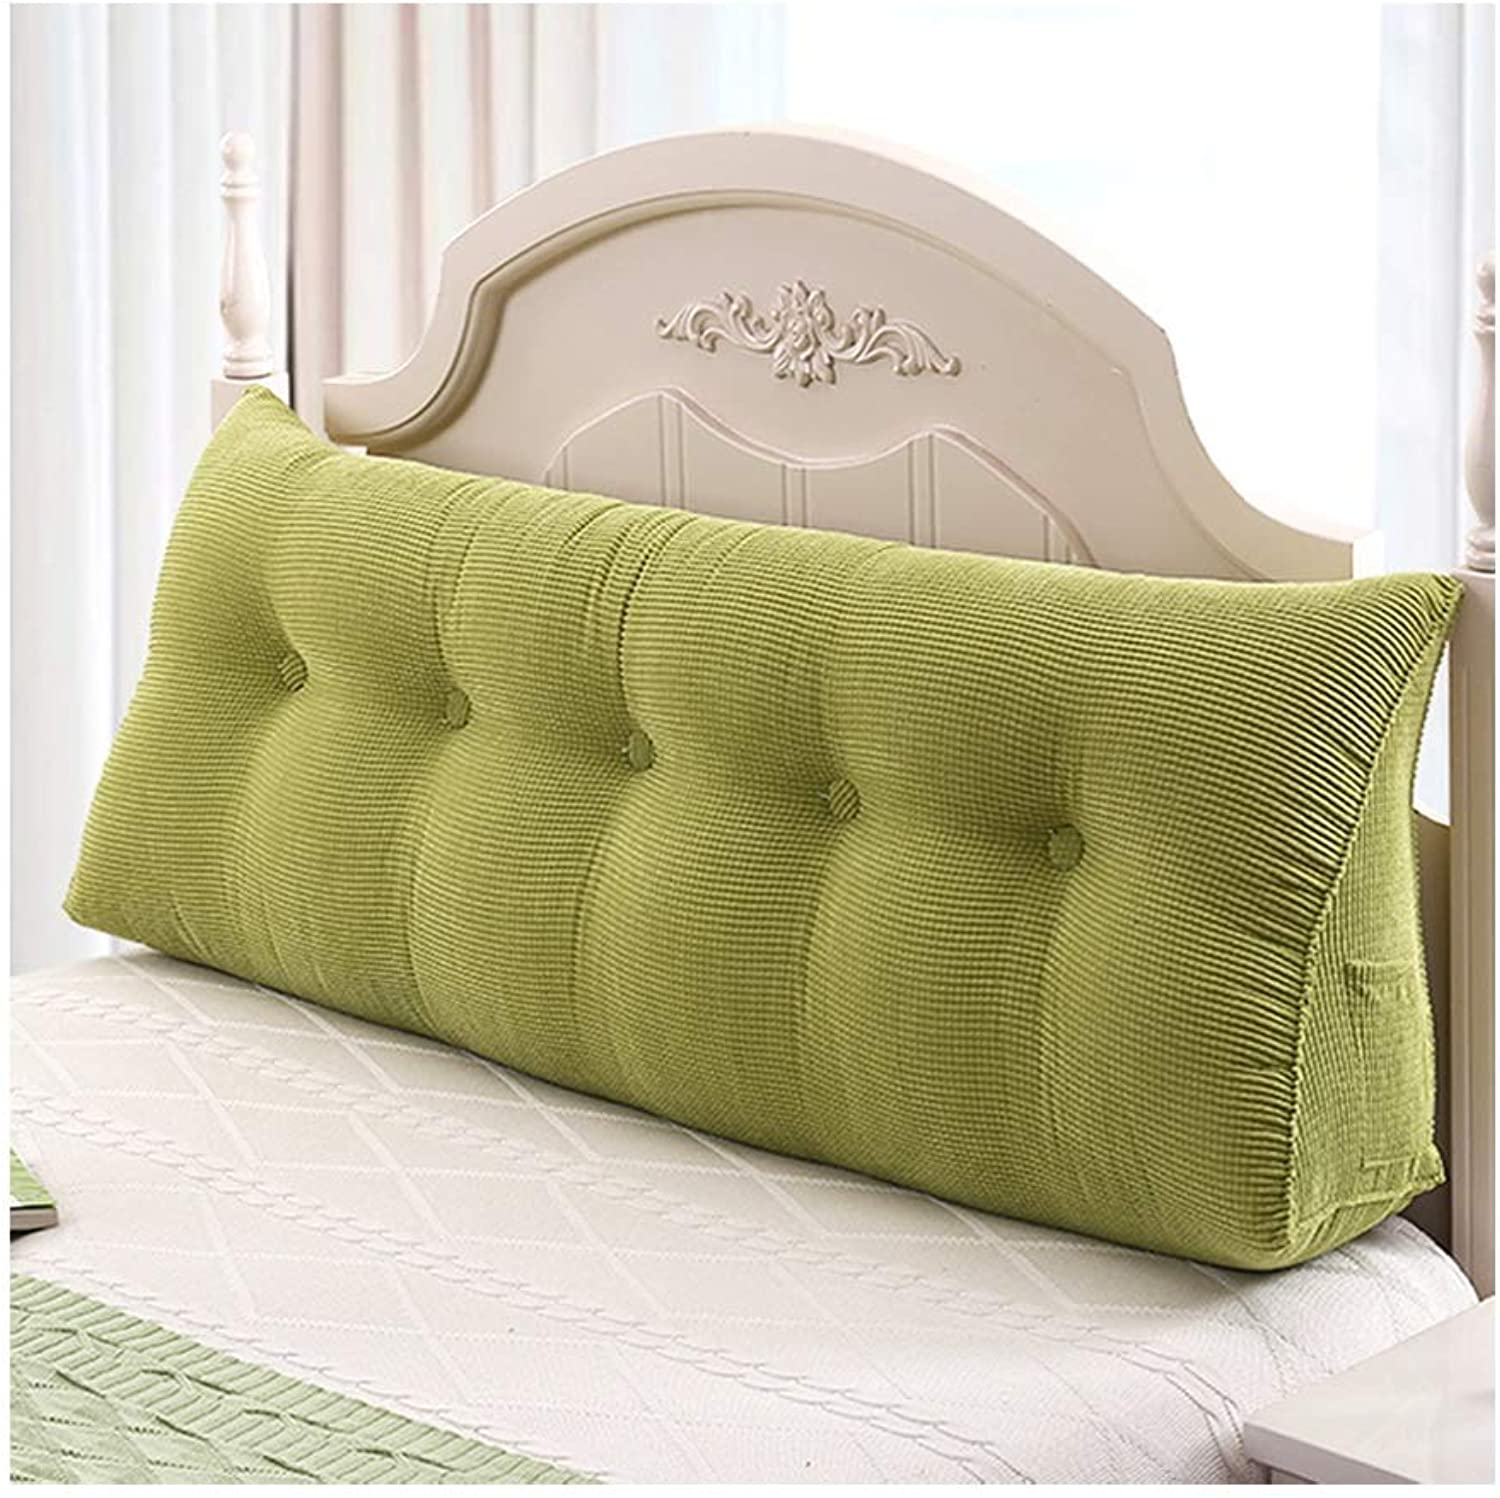 Bedside Cushion,Double Bedside Triangle Cushion Pillow Sofa Backrest Case Predect The Waist Soft Bag Reading (color   Green, Size   80  50cm)